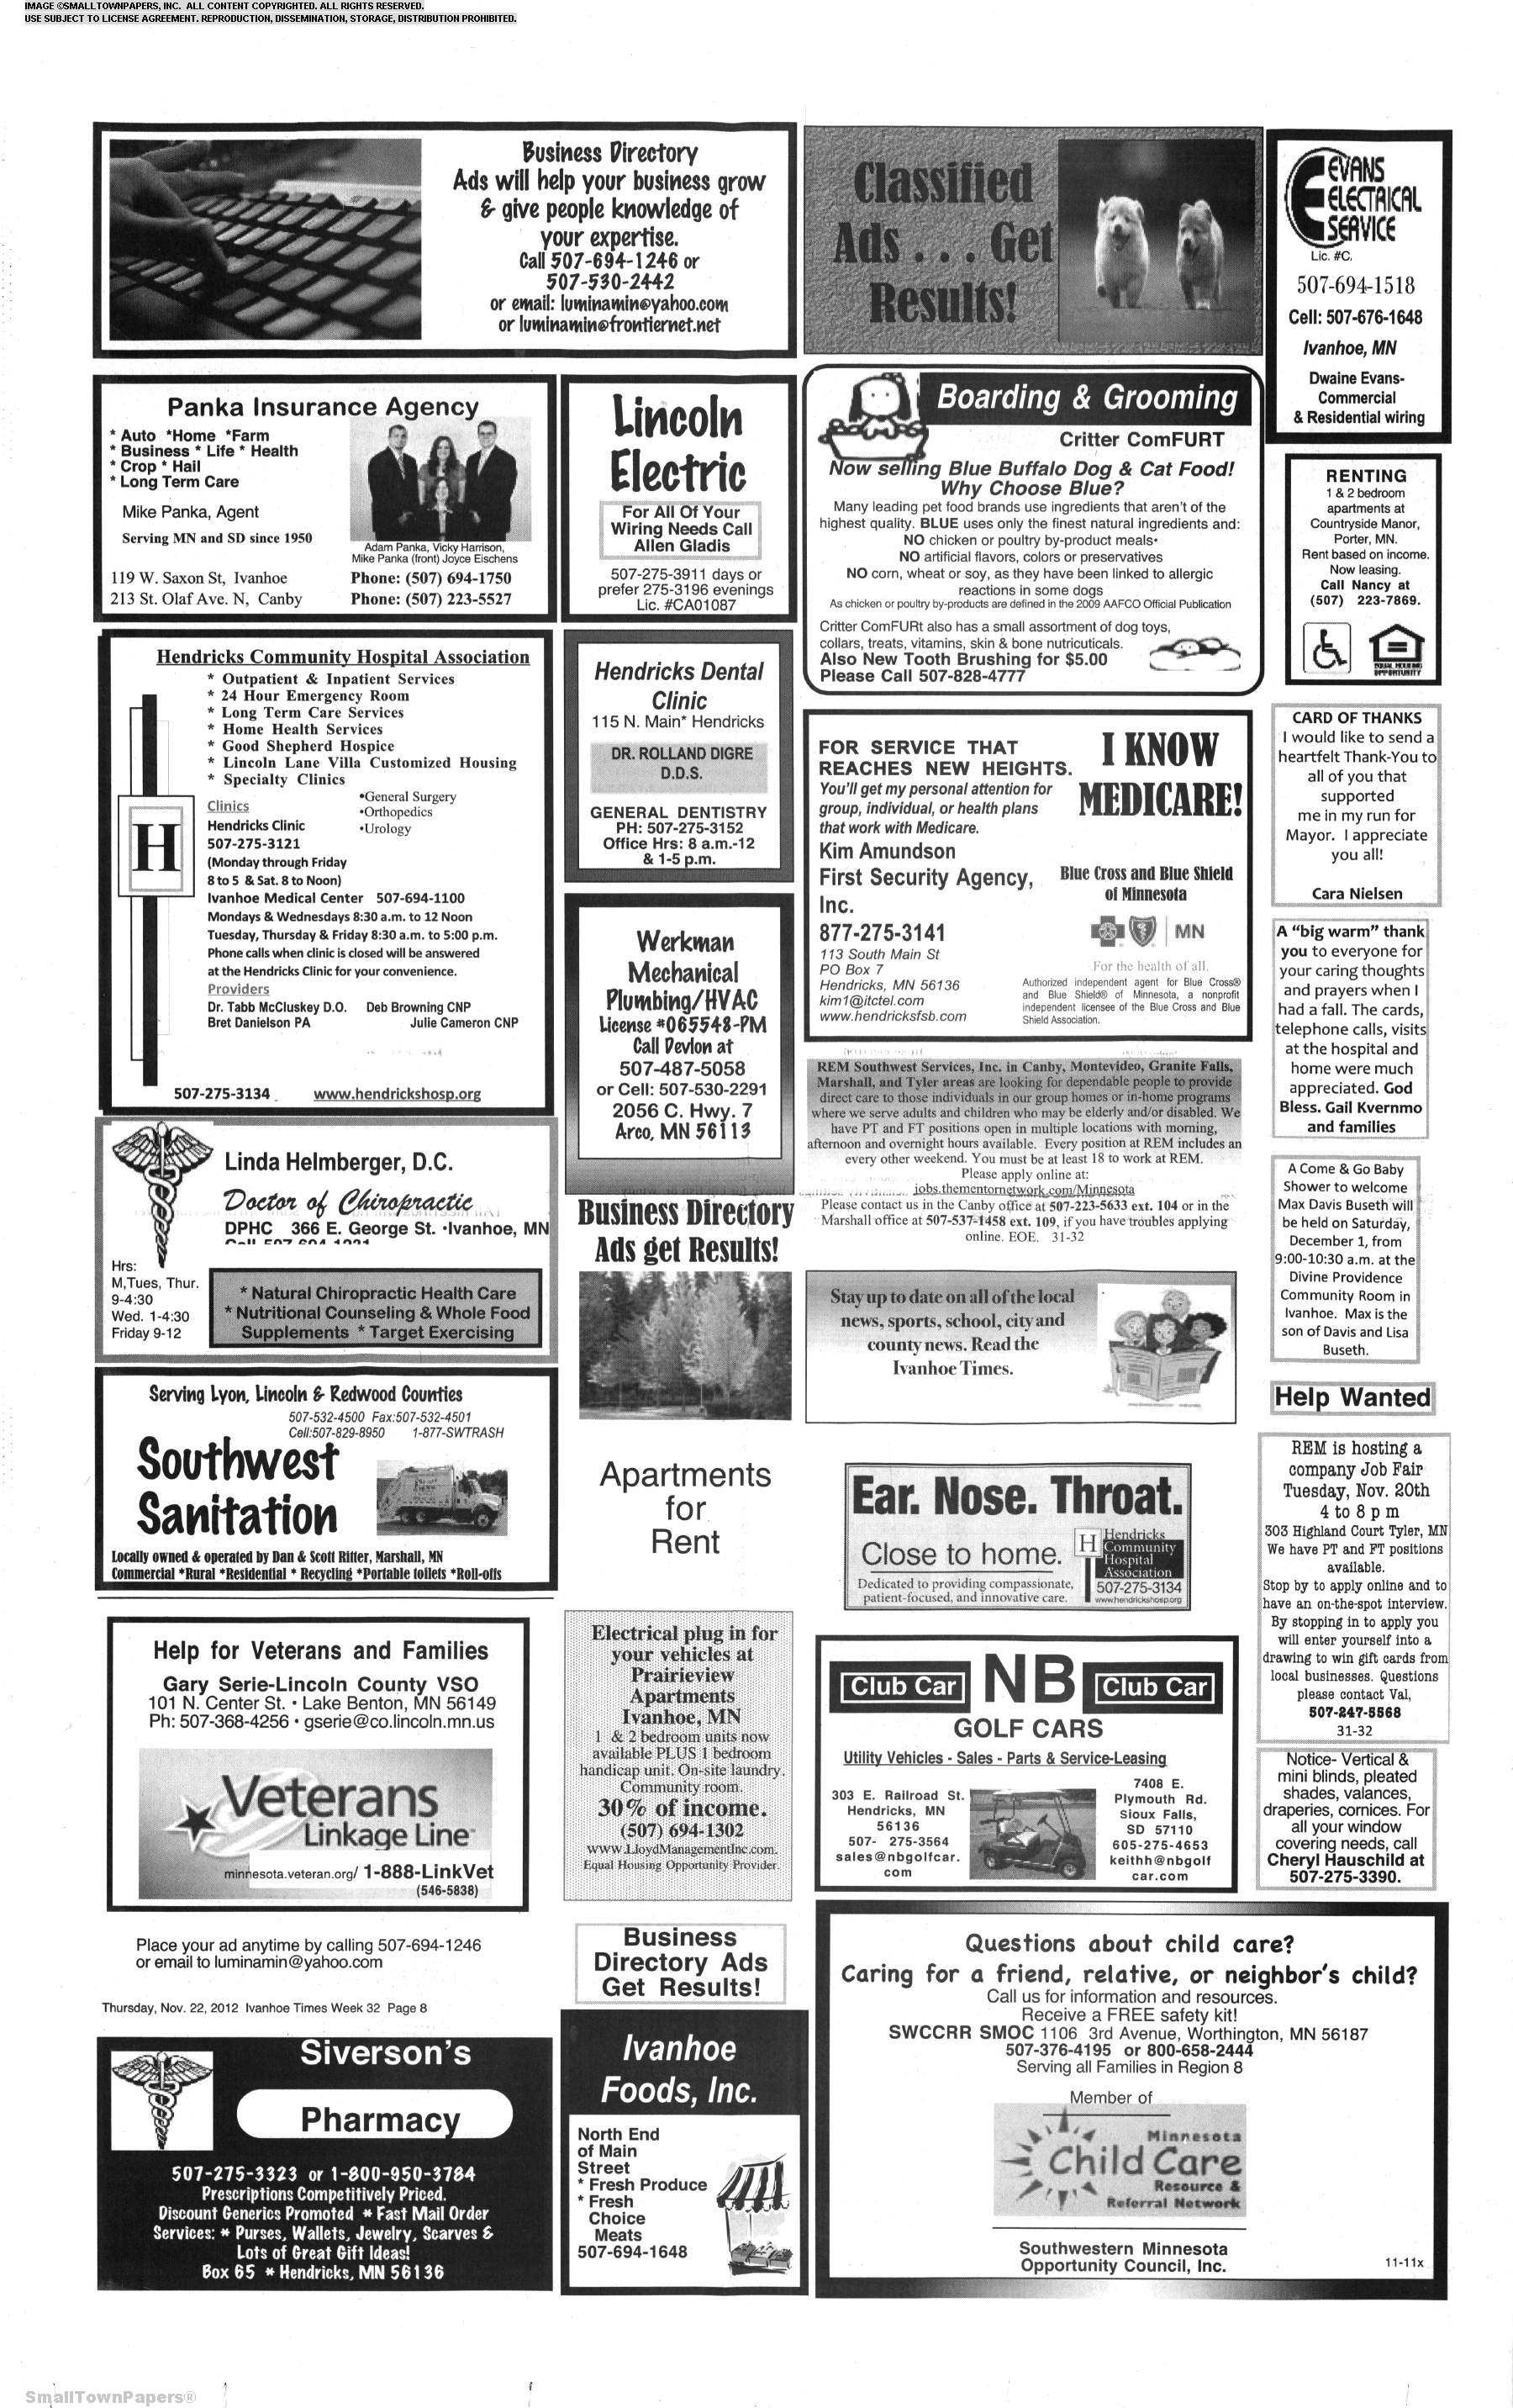 Ivanhoe Times November 22, 2012: Page 8